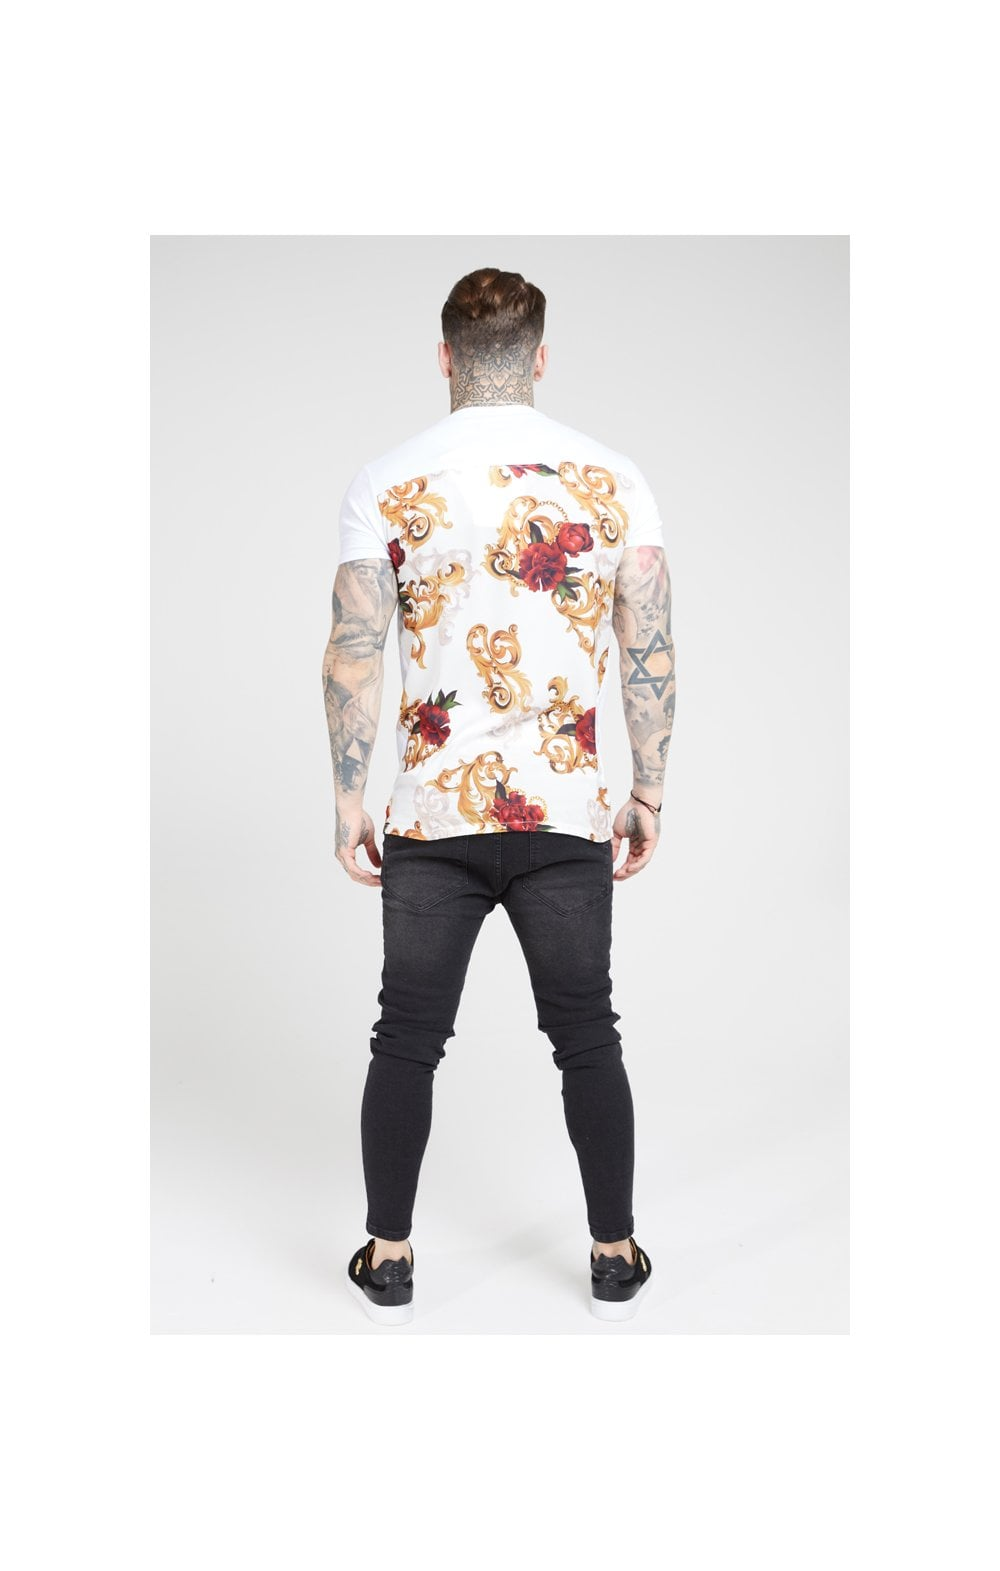 Load image into Gallery viewer, SikSilk S/S Reverse Collar Tee – White & Floral Elegance (5)